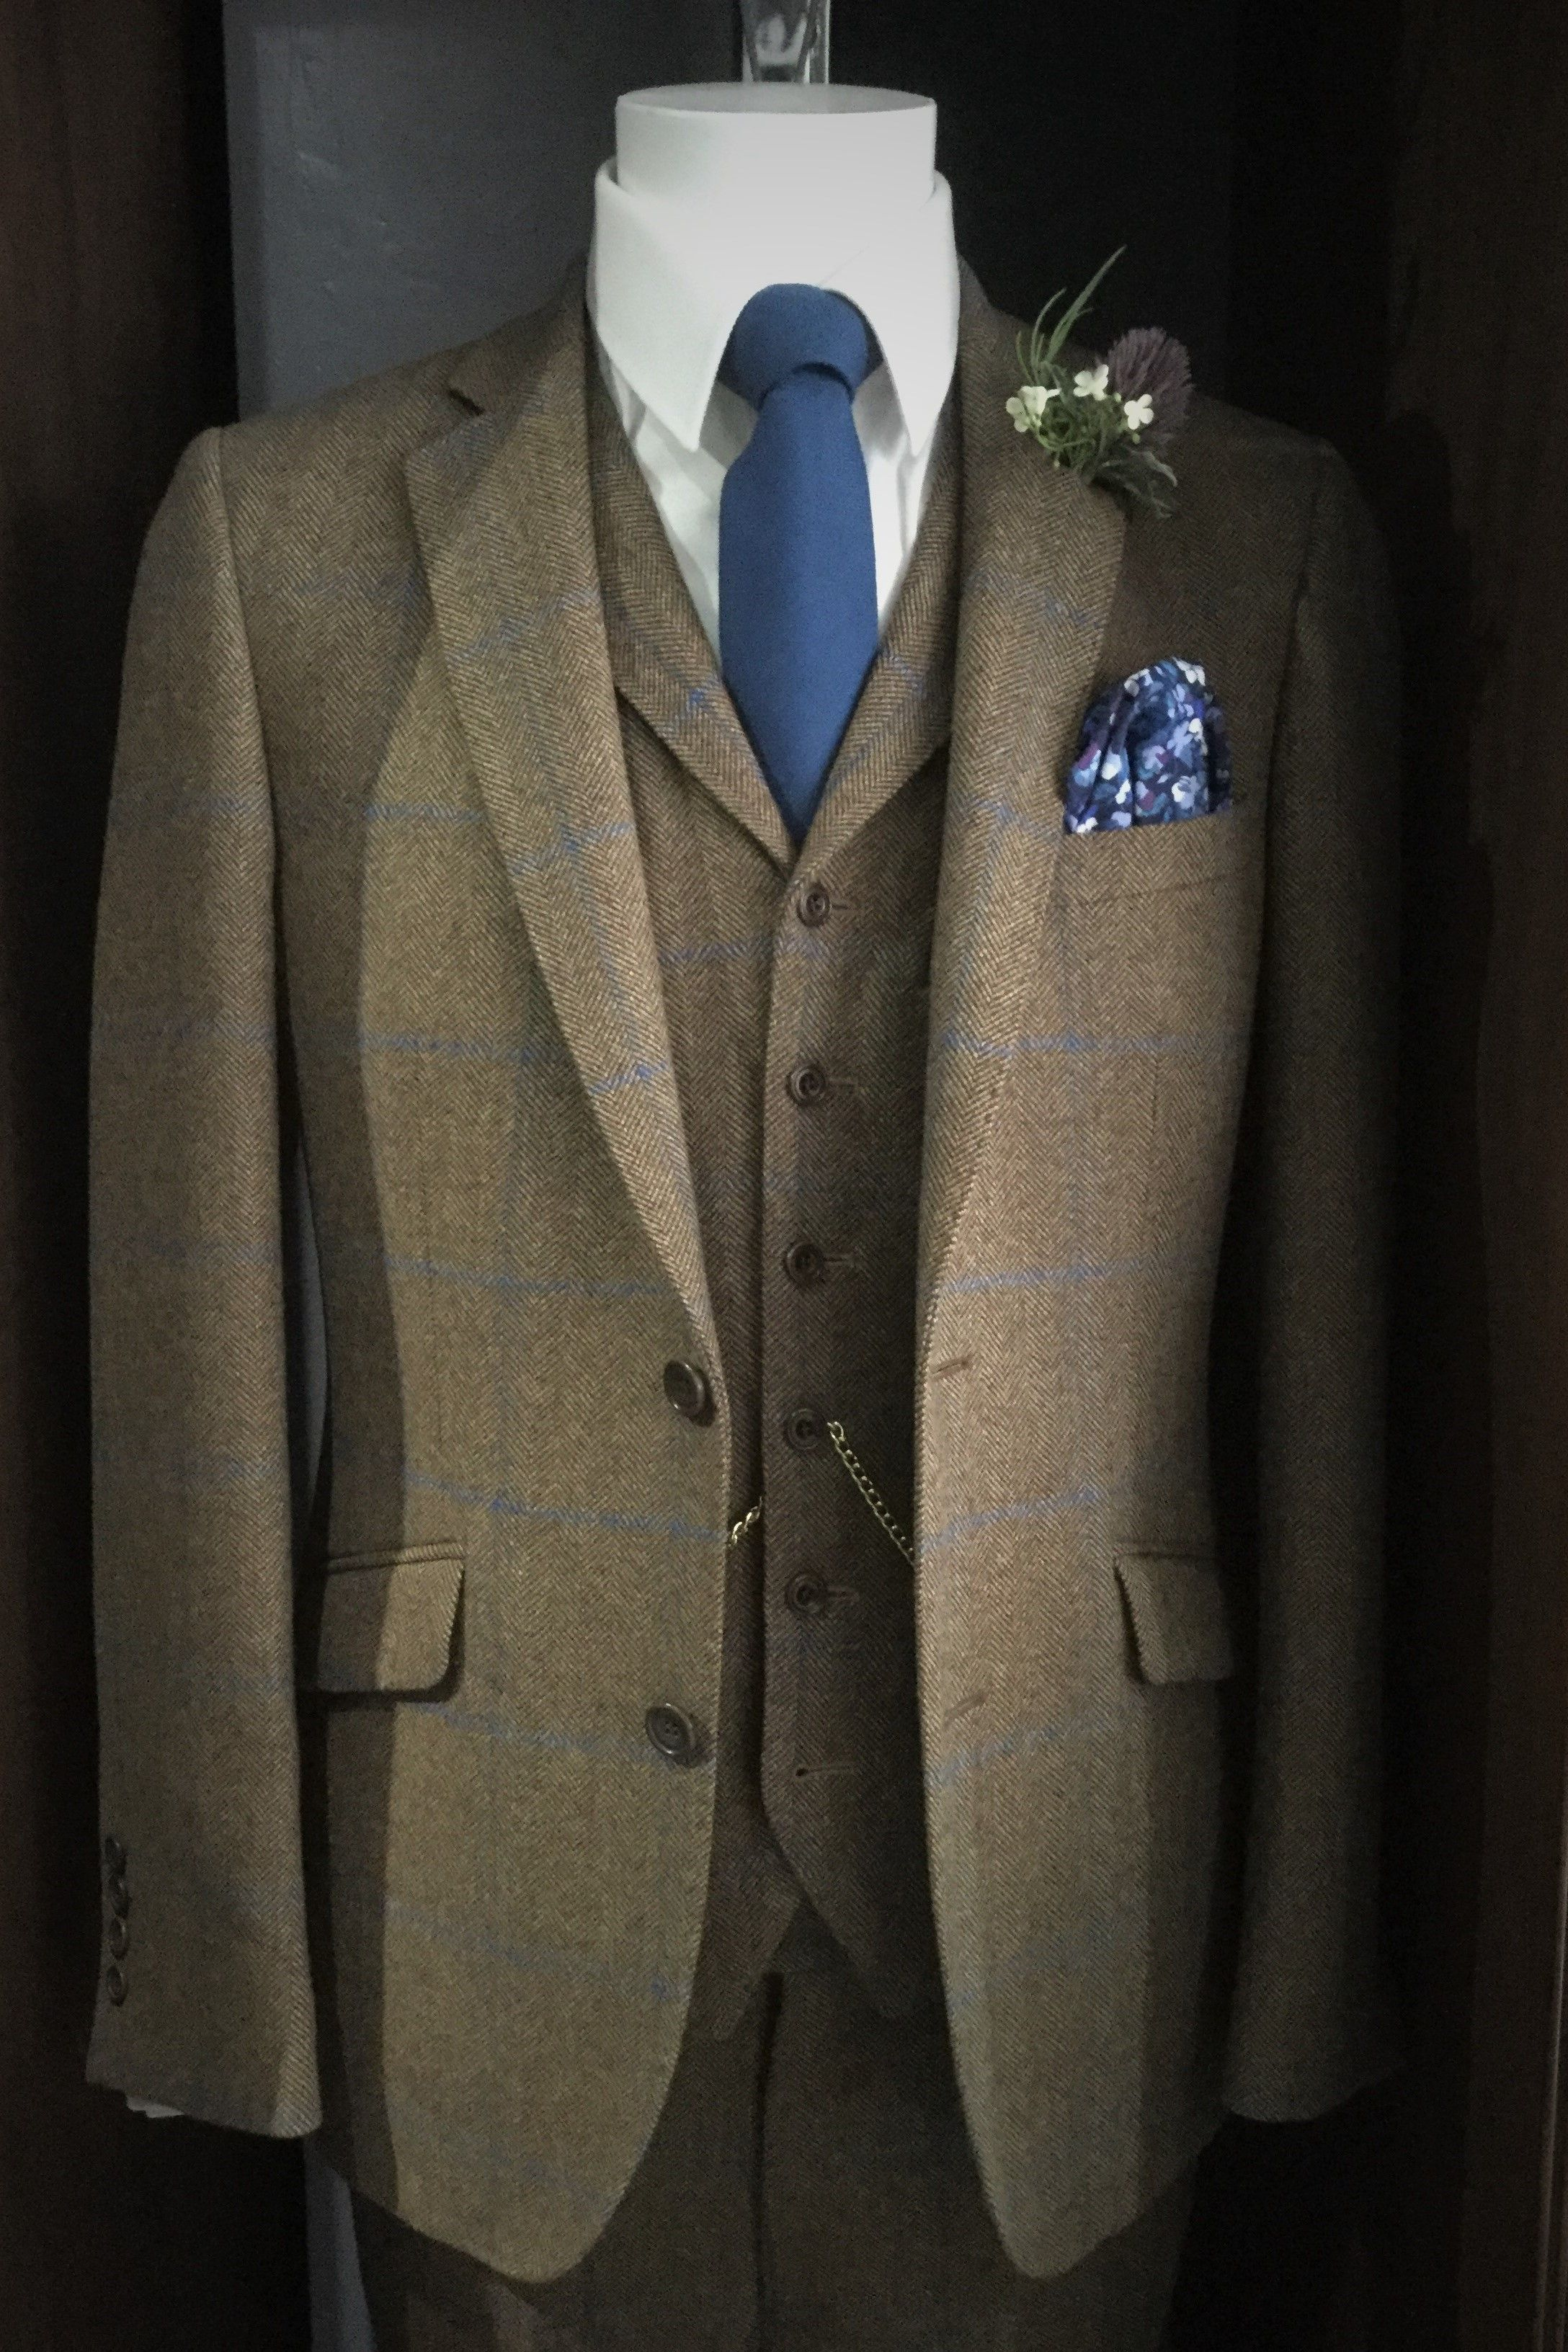 ed00723dbee1 Black Tie Menswear's award winning, exclusive house tweed option. Available  to hire and to